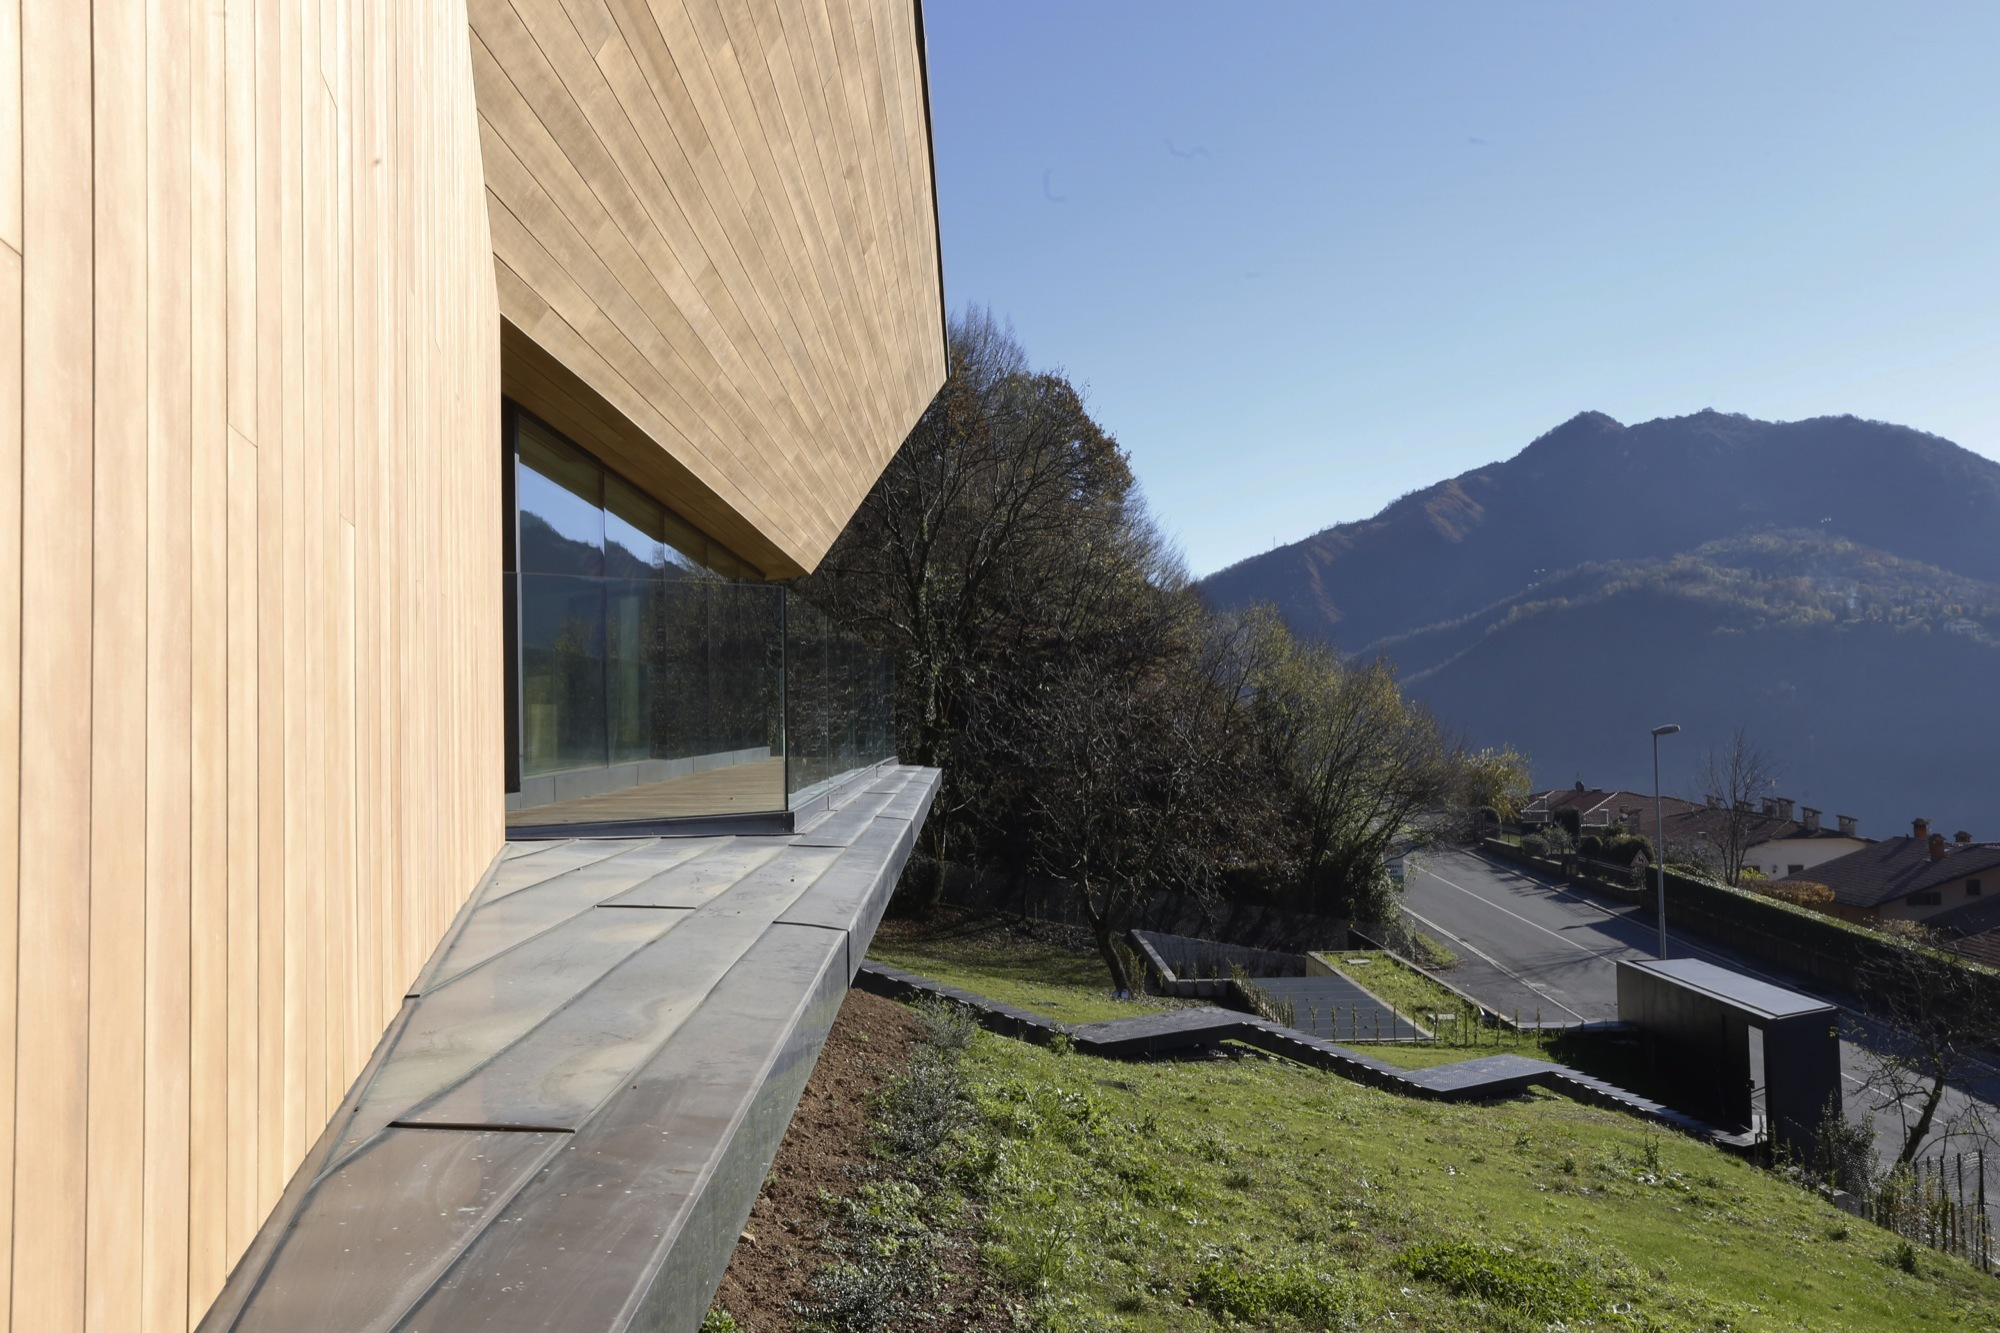 Alps Villa / Camillo Botticini (26)